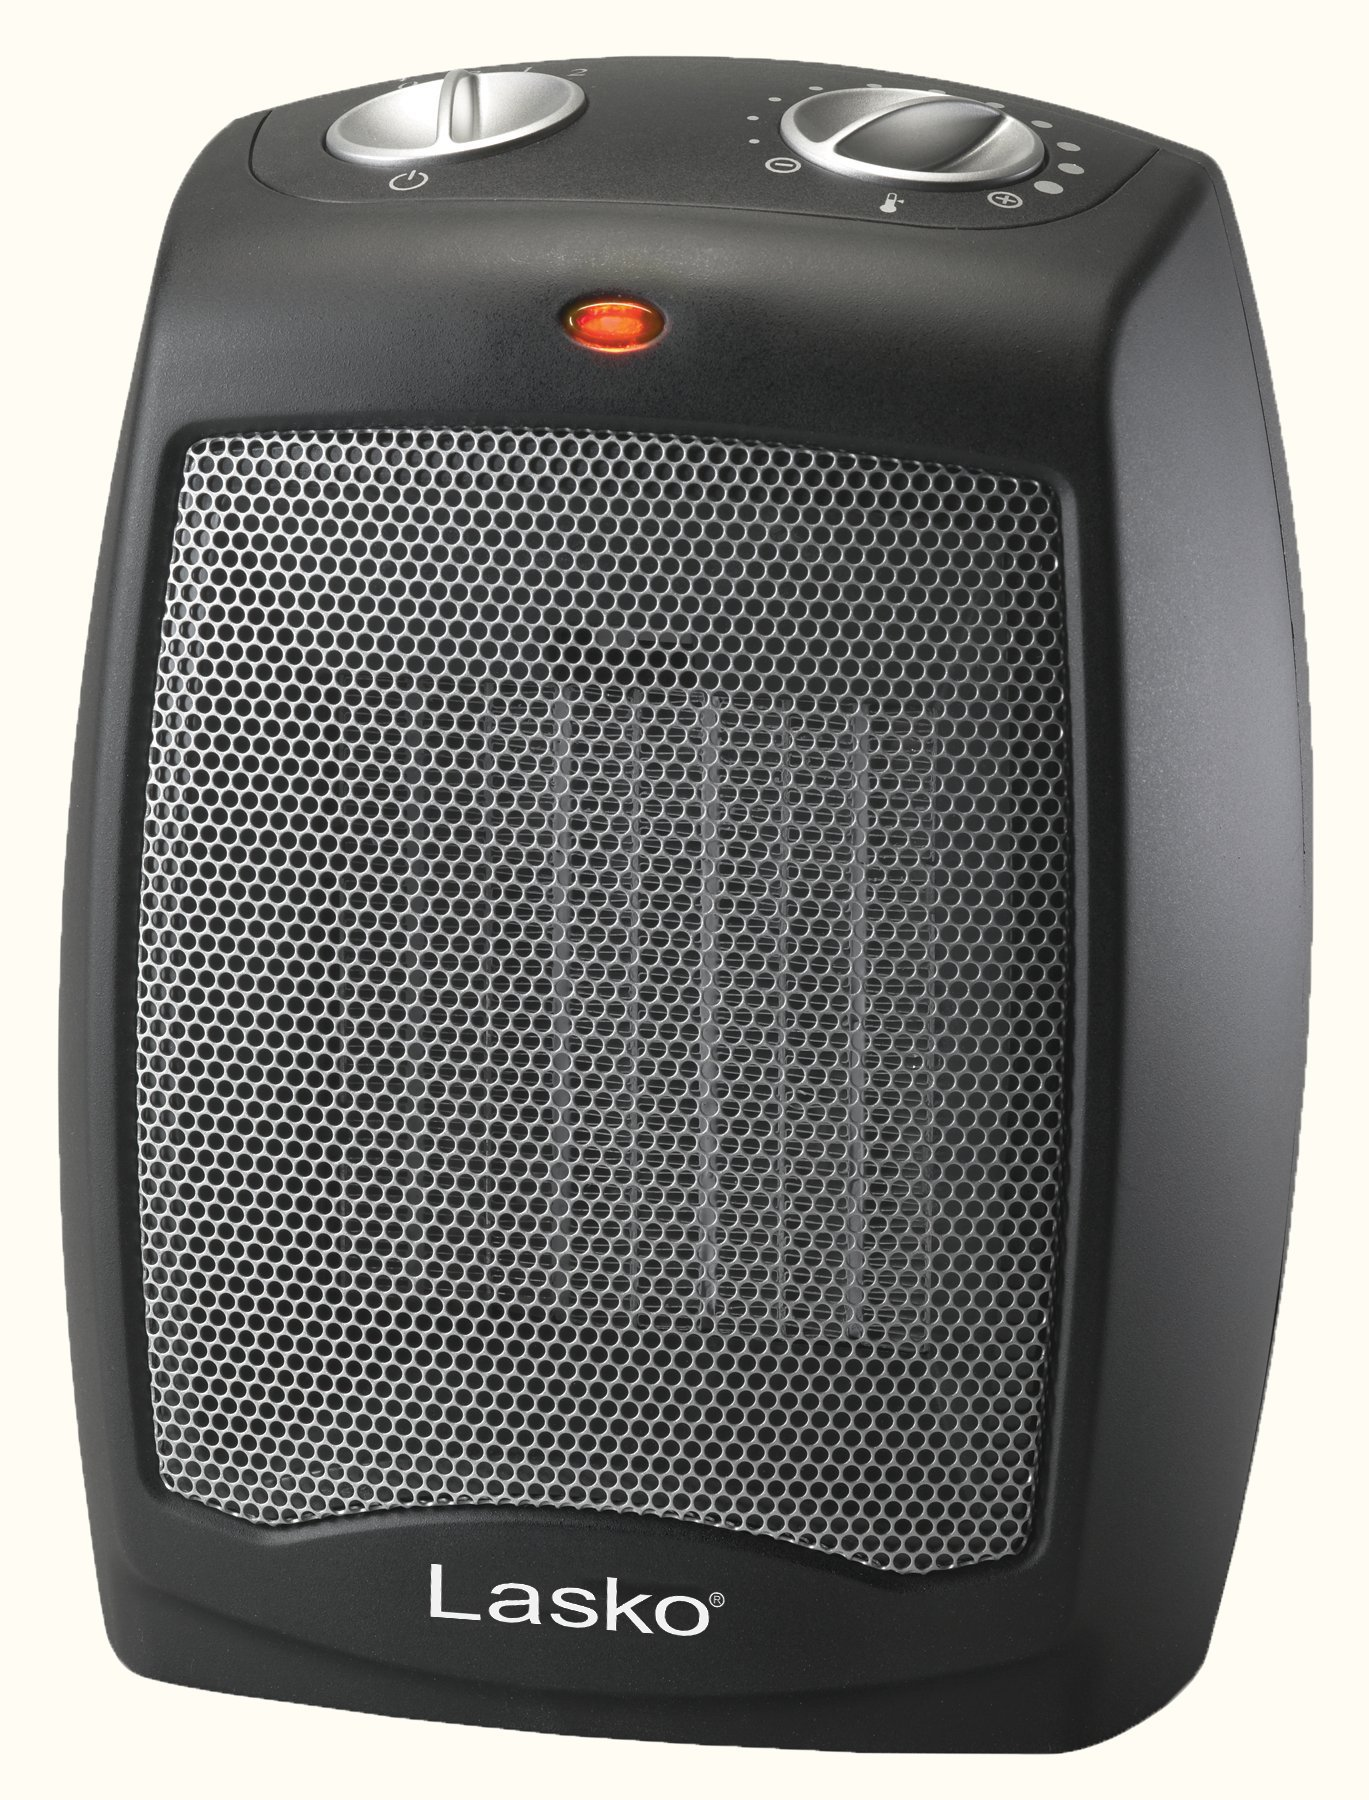 Lasko CD09250 Ceramic Portable Space Heater with Adjustable Thermostat - Perfect For the Home or Home Office by Lasko